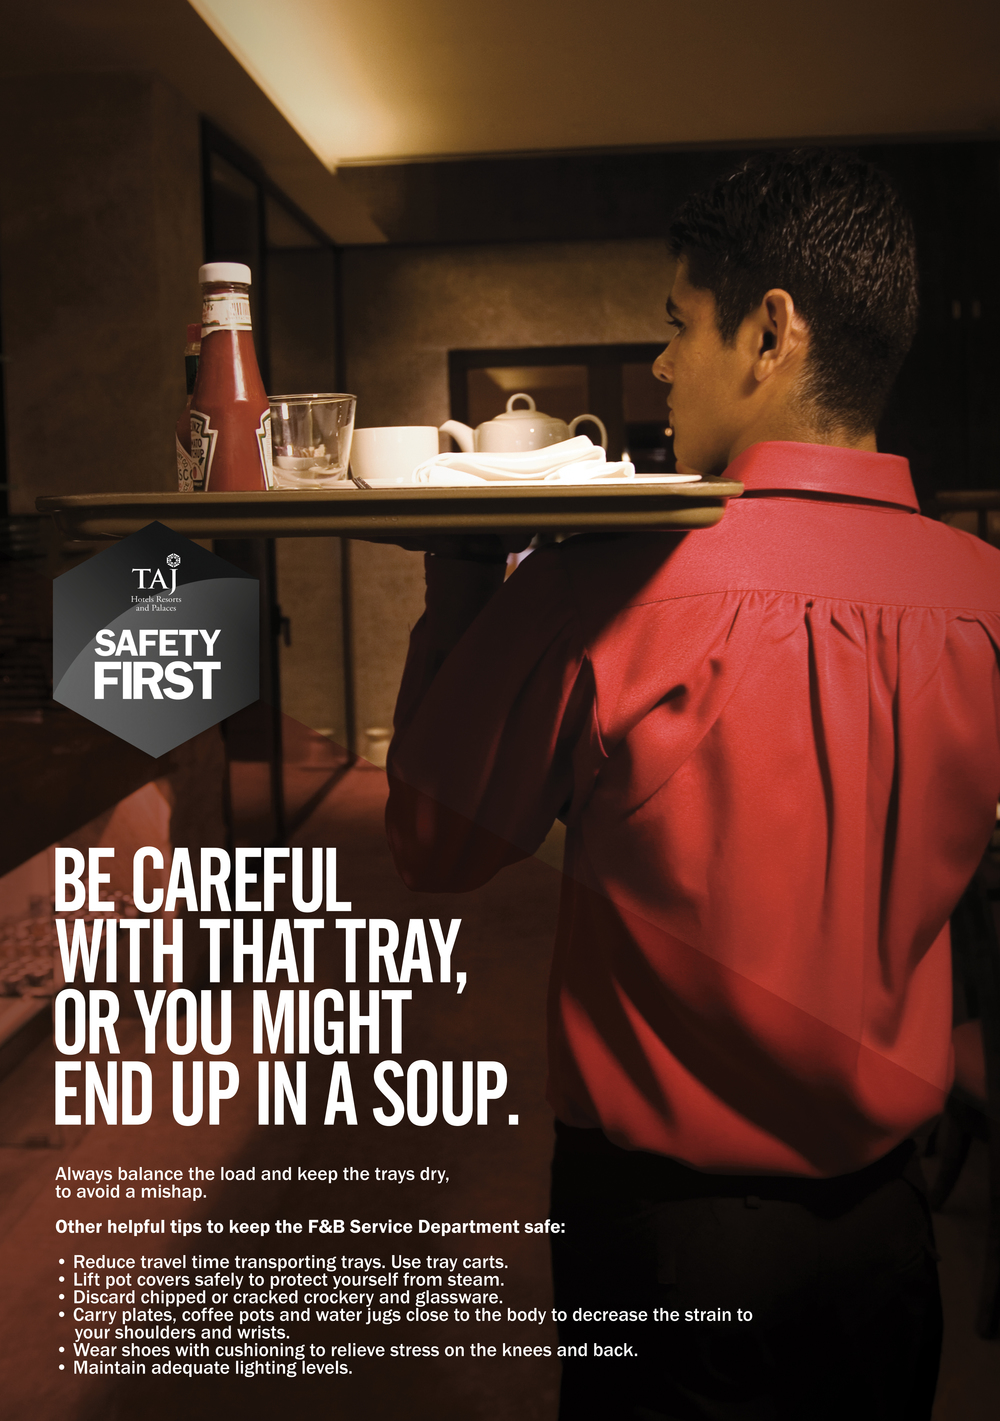 Safety Poster 01_hi-res.jpg